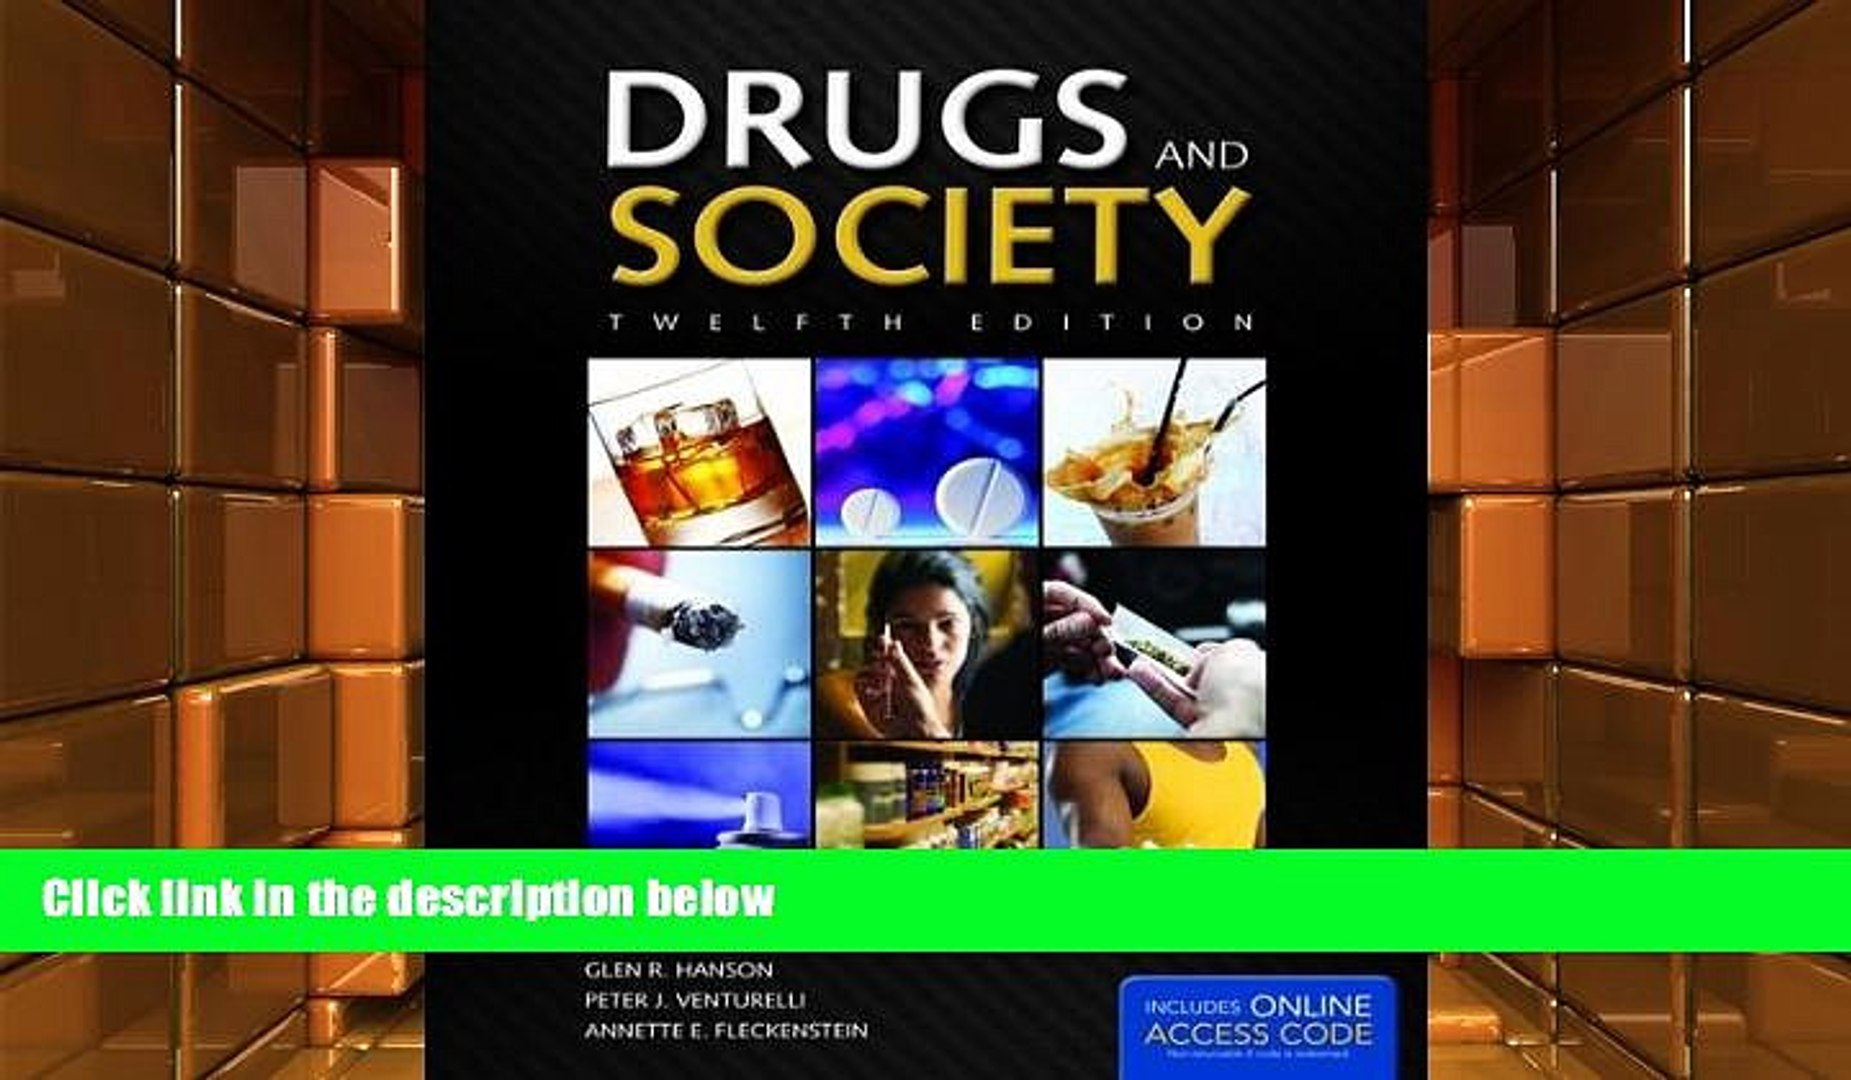 Audiobook  Drugs And Society (Hanson, Drugs and Society) Glen R. Hanson  For Kindle